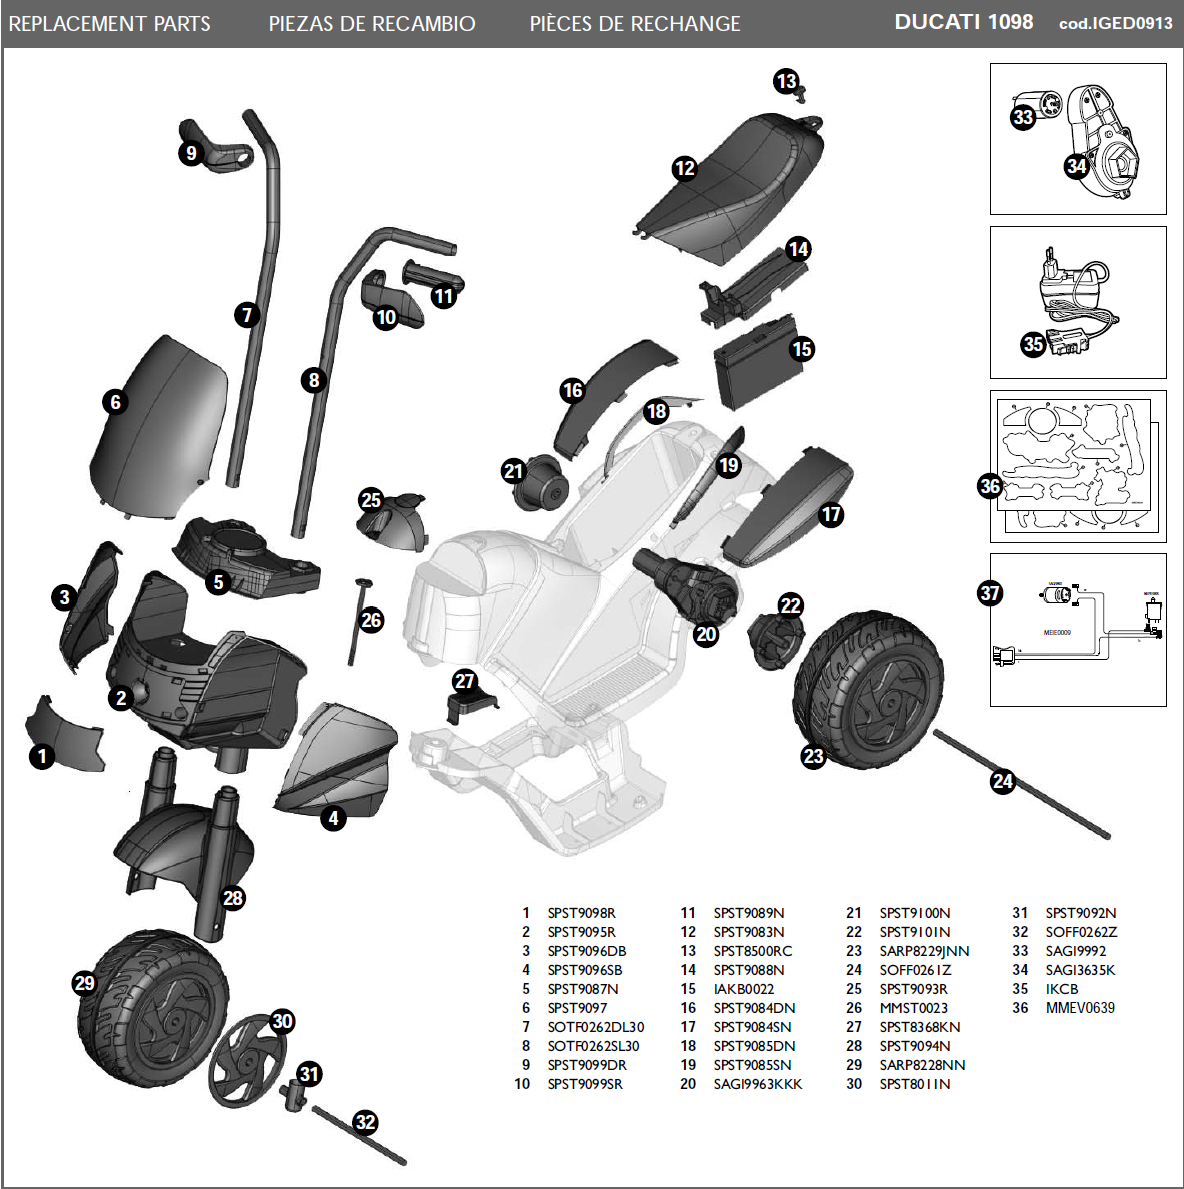 IGED0913 parts diagram